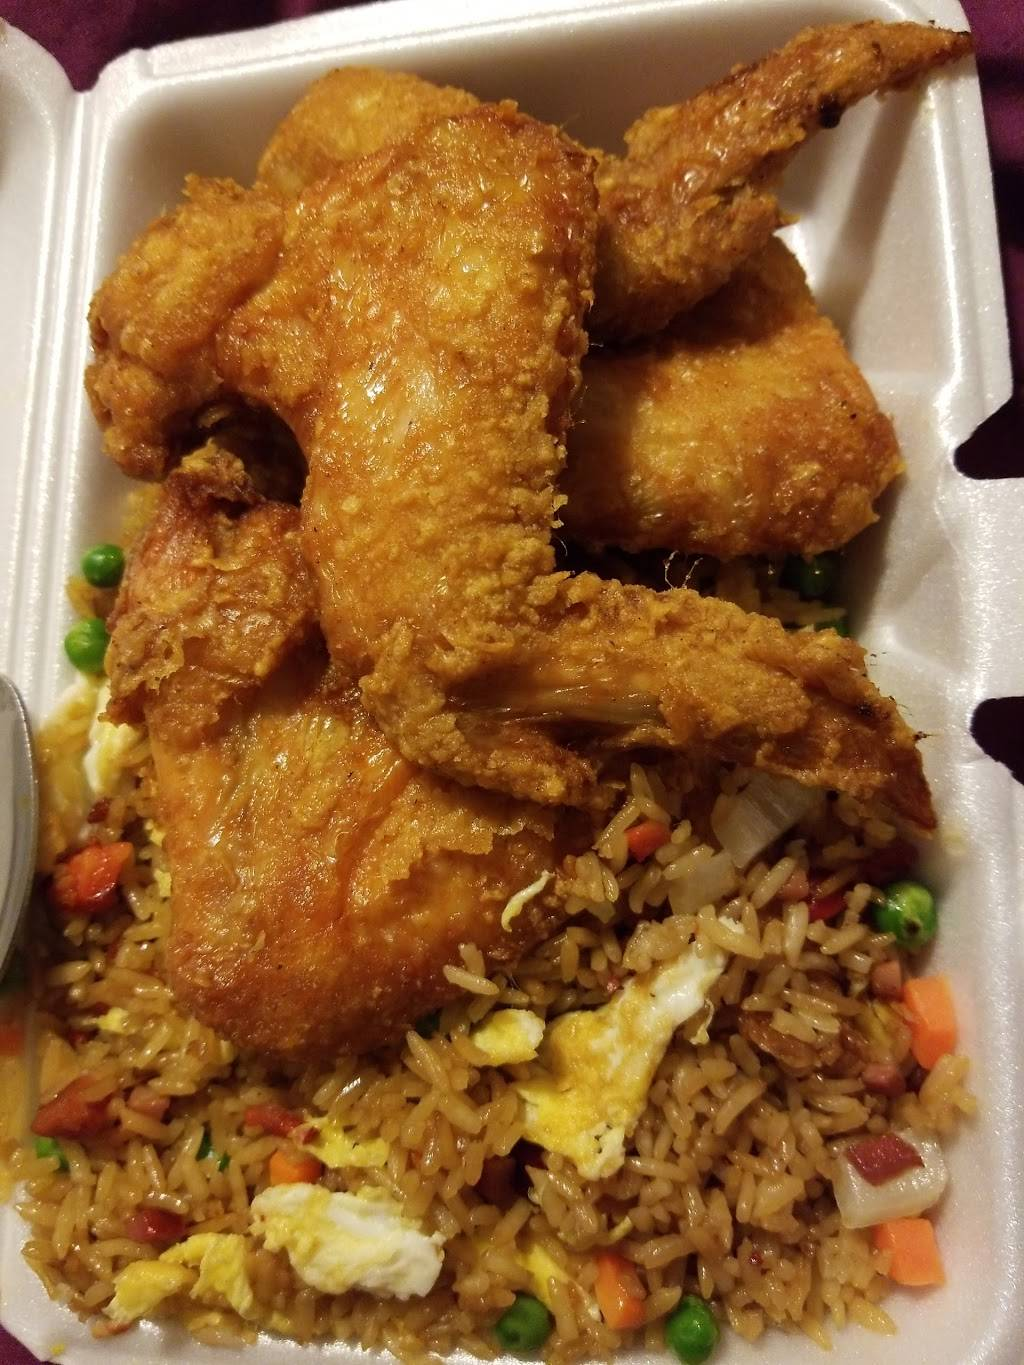 Fortune Chinese Restaurant | restaurant | 97 Prospect Ave, Hartford, CT 06106, USA | 8602327777 OR +1 860-232-7777